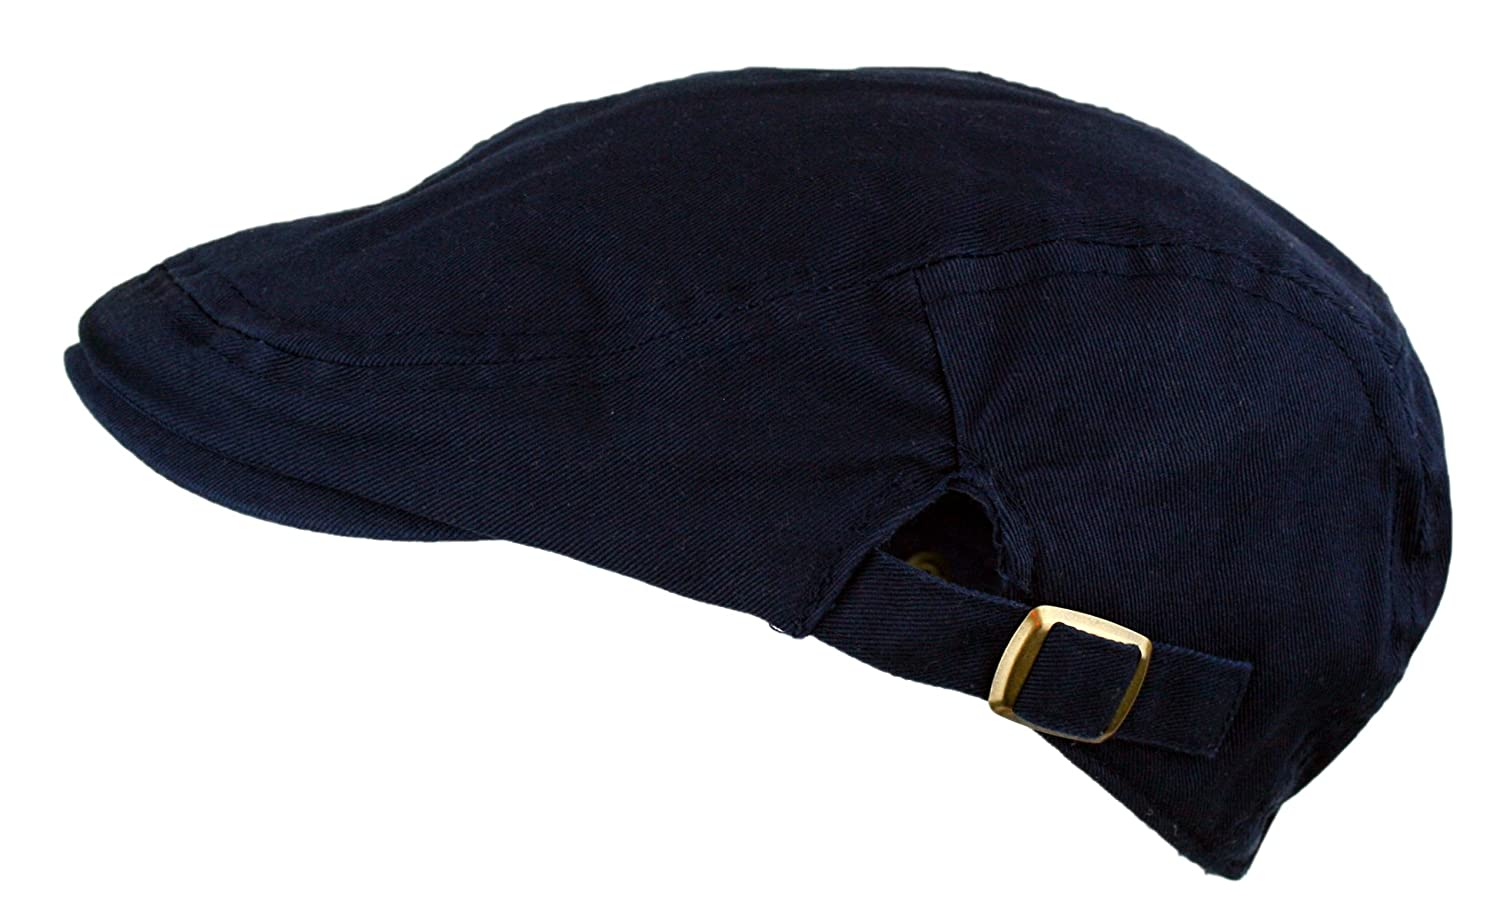 d5f98d58866 Men s Cotton Flat Cap Ivy Gatsby Newsboy Hunting Hat (Navy)  Amazon.in   Clothing   Accessories